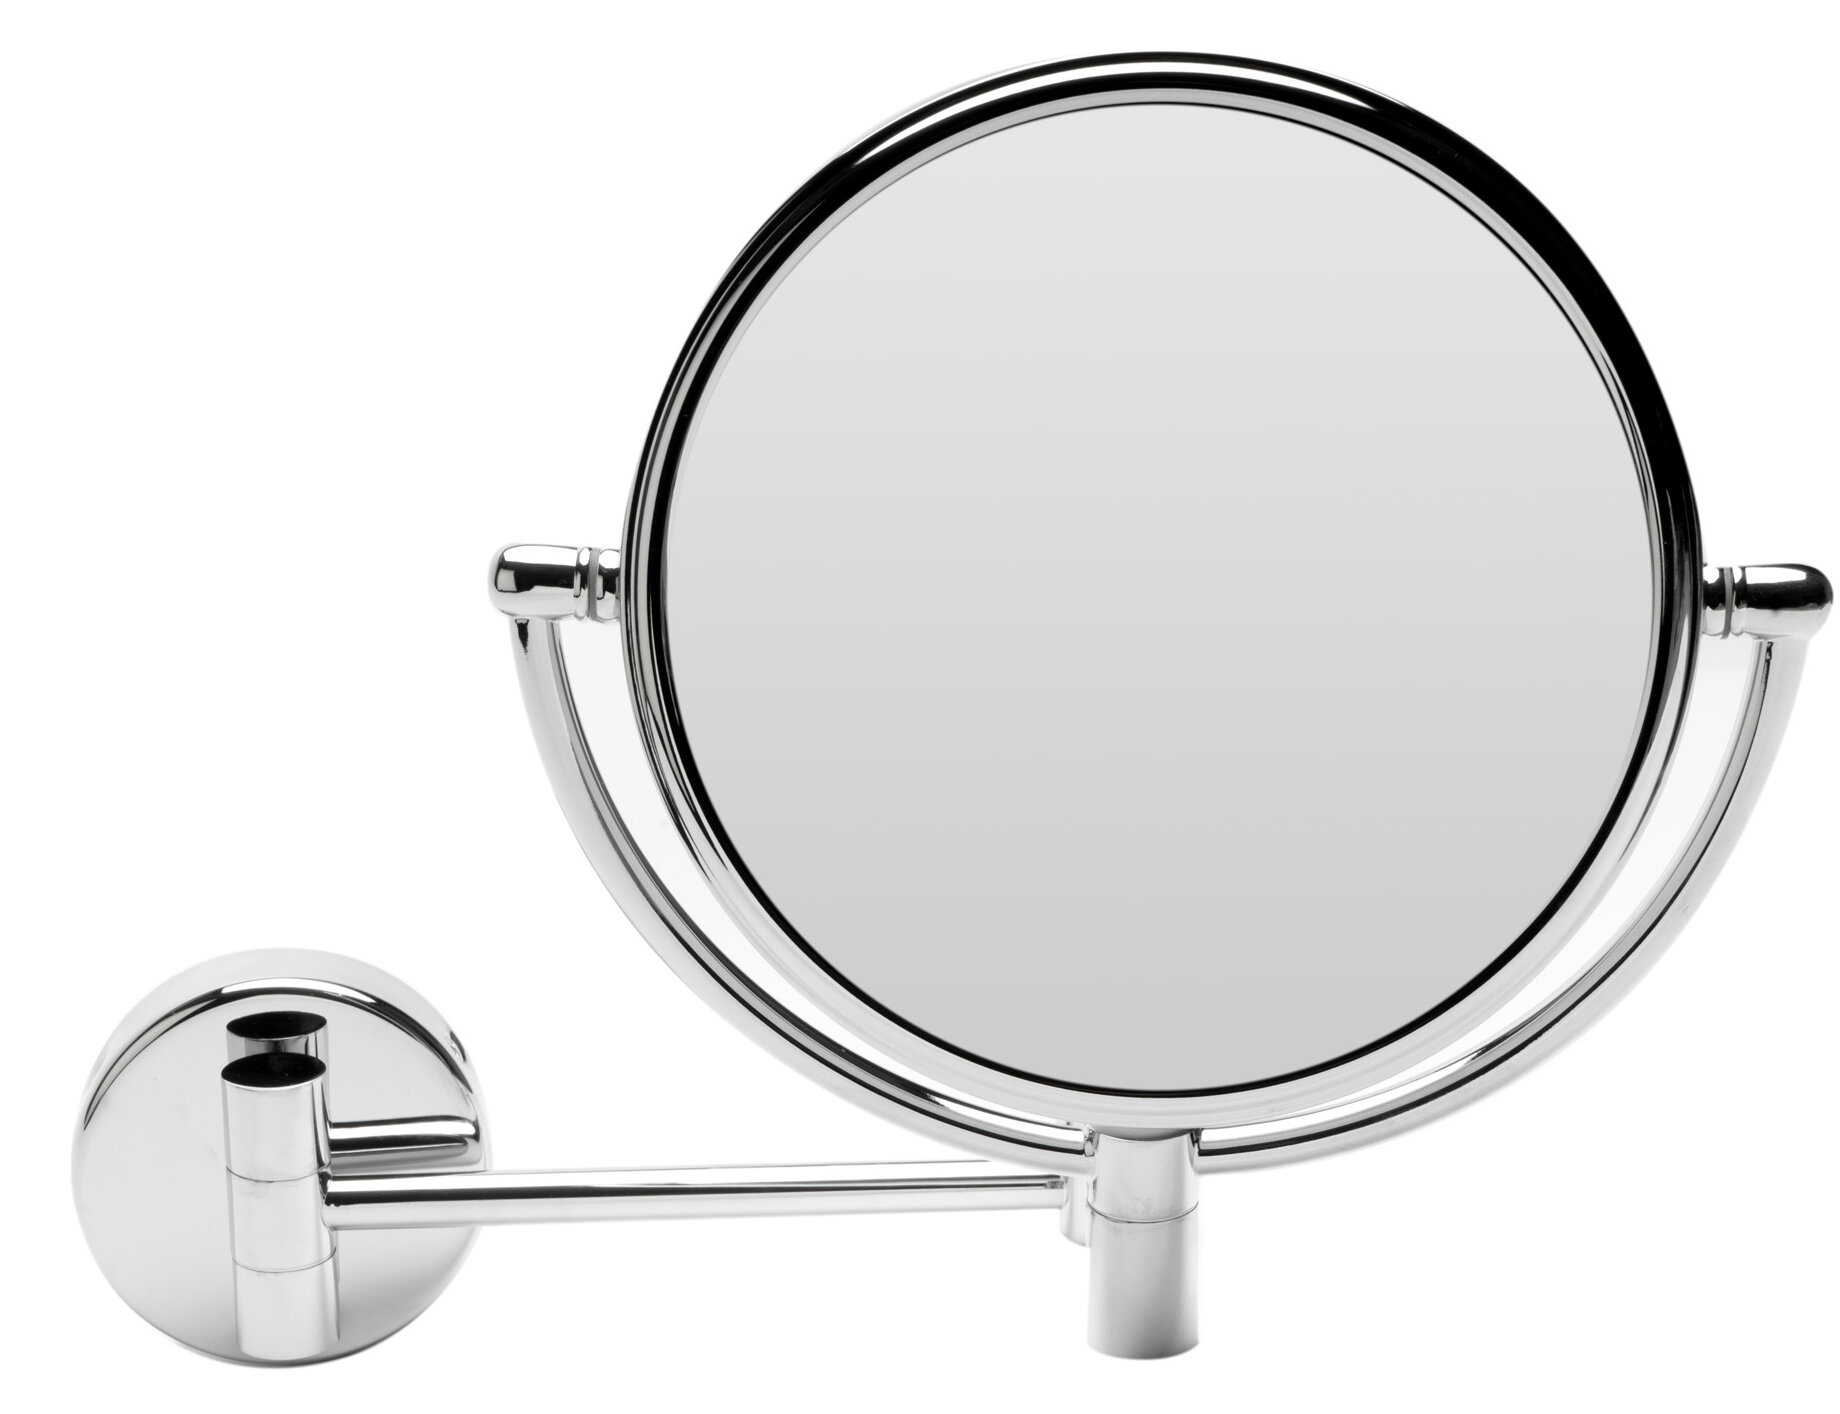 Round Wall Mounted Magnifying Makeup Shaving Mirror